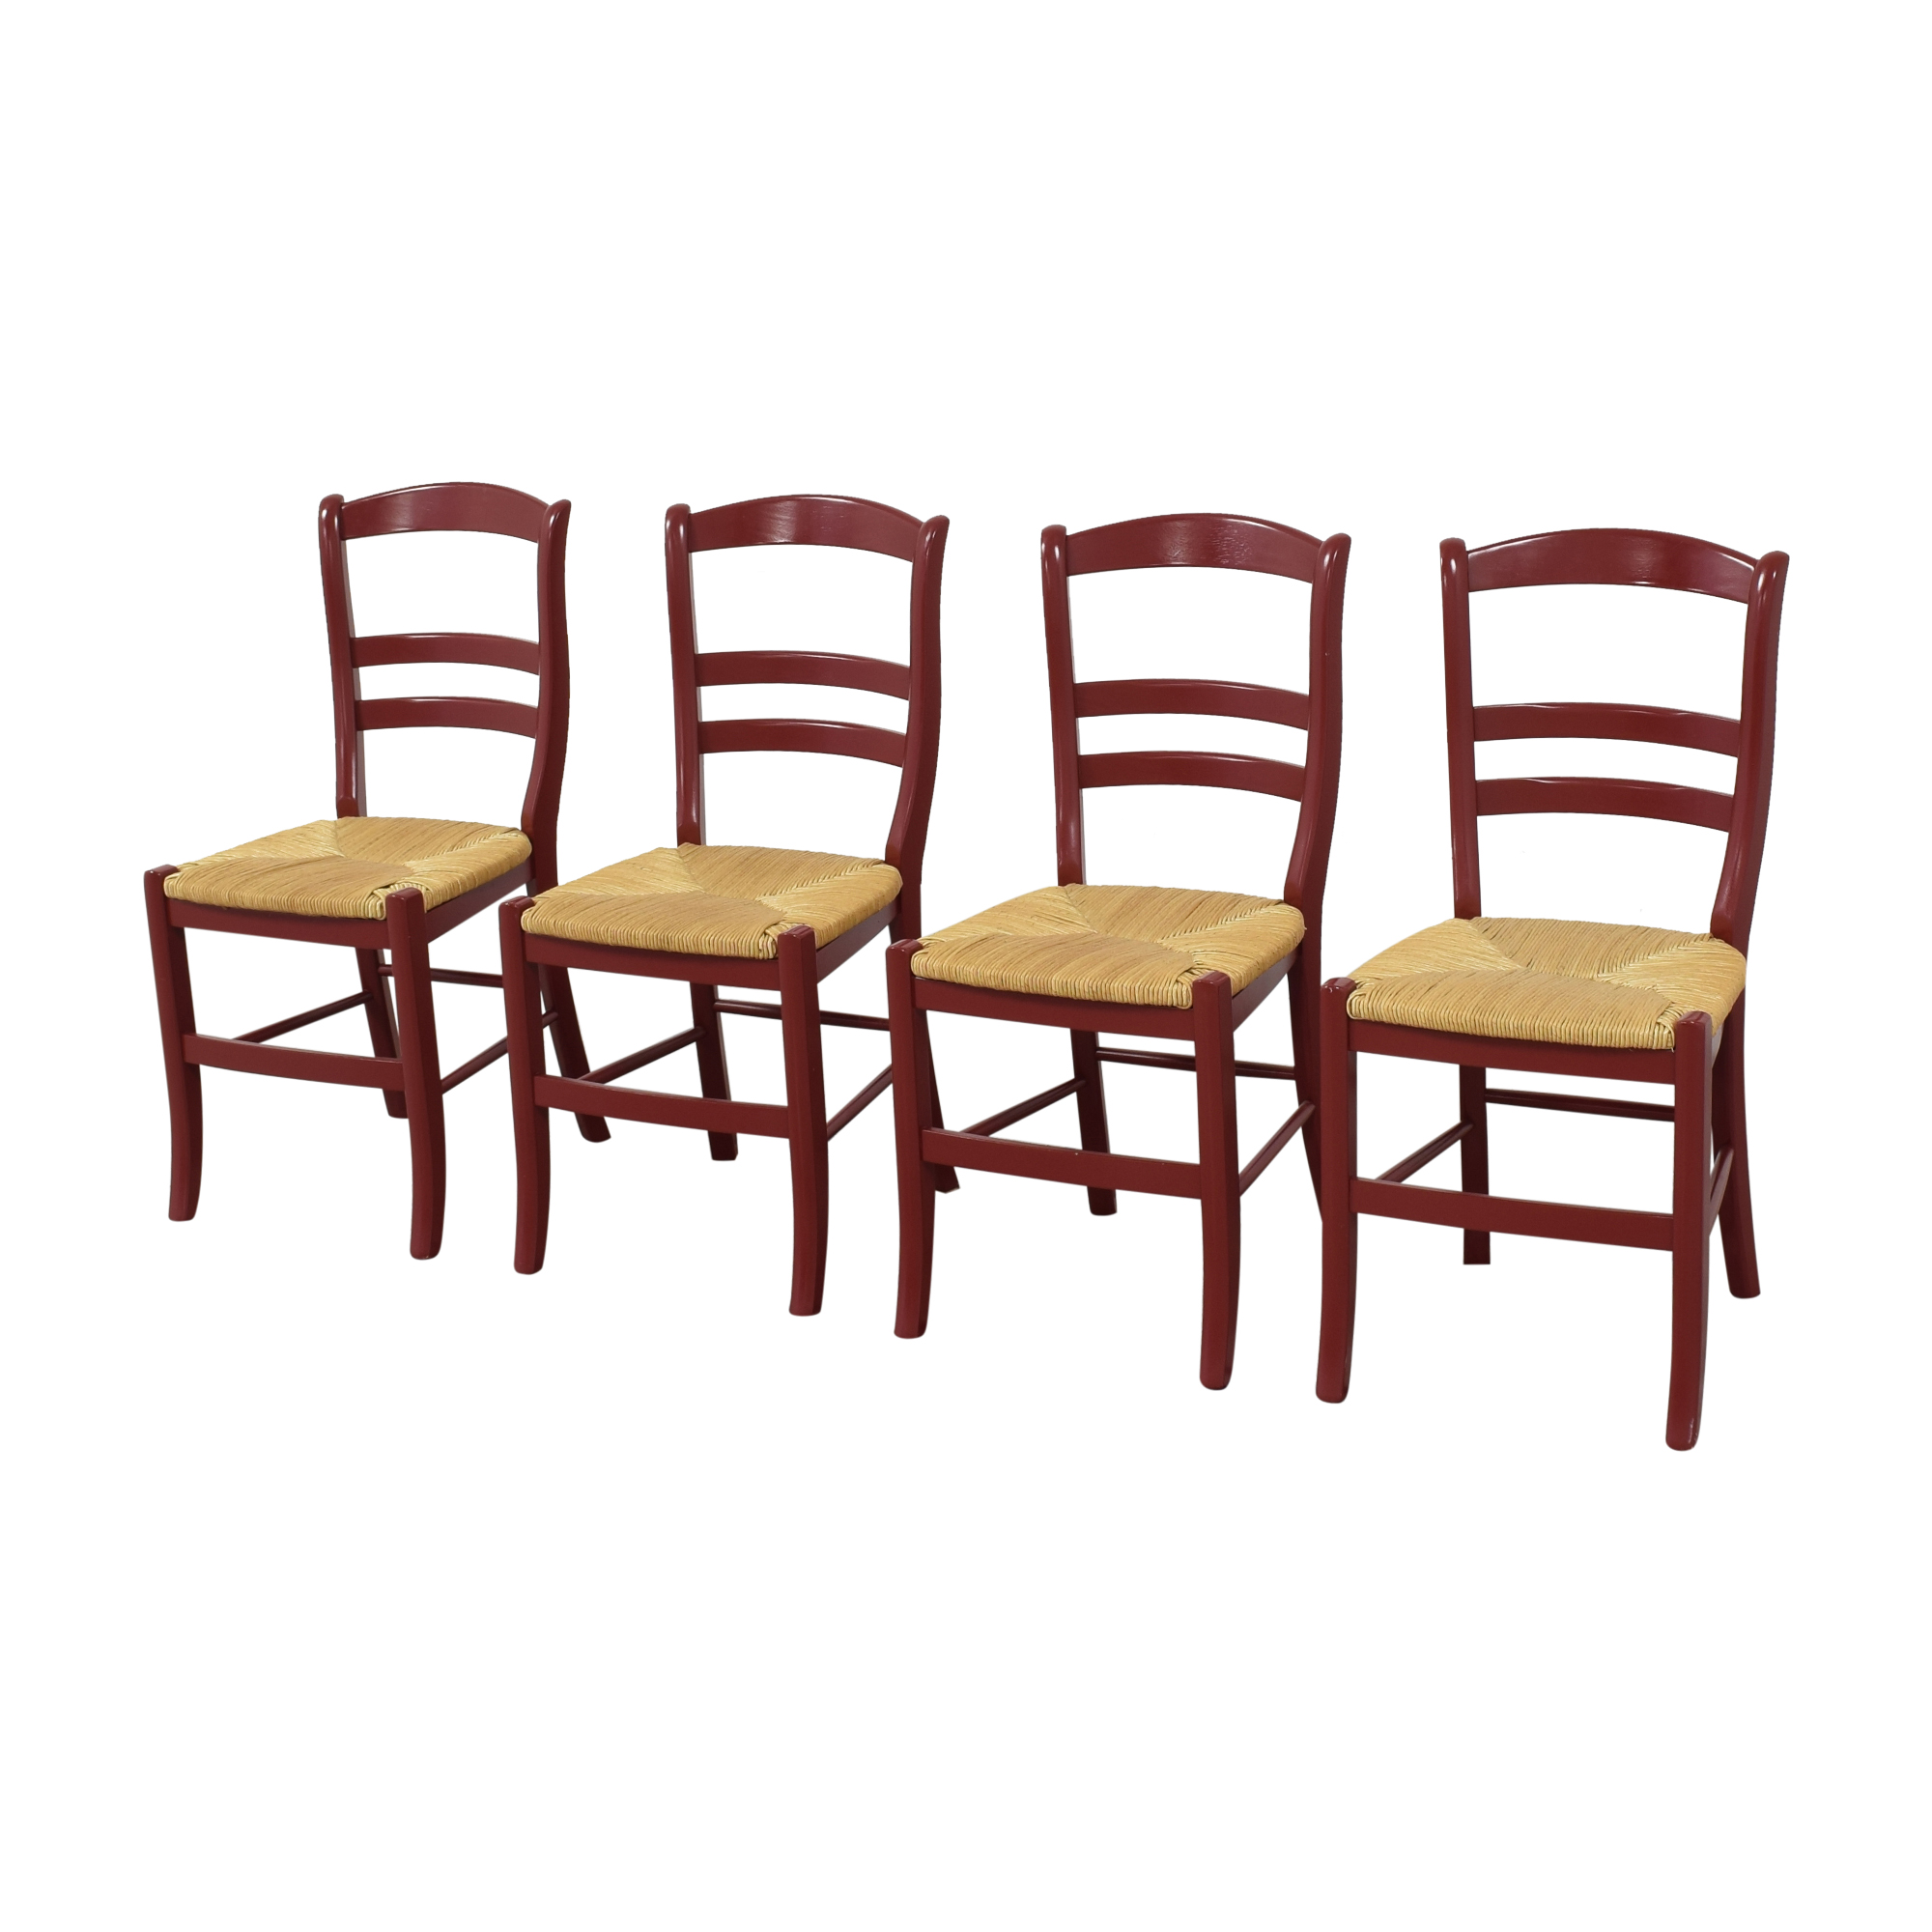 Pottery Barn Pottery Barn Isabella Dining Chairs price